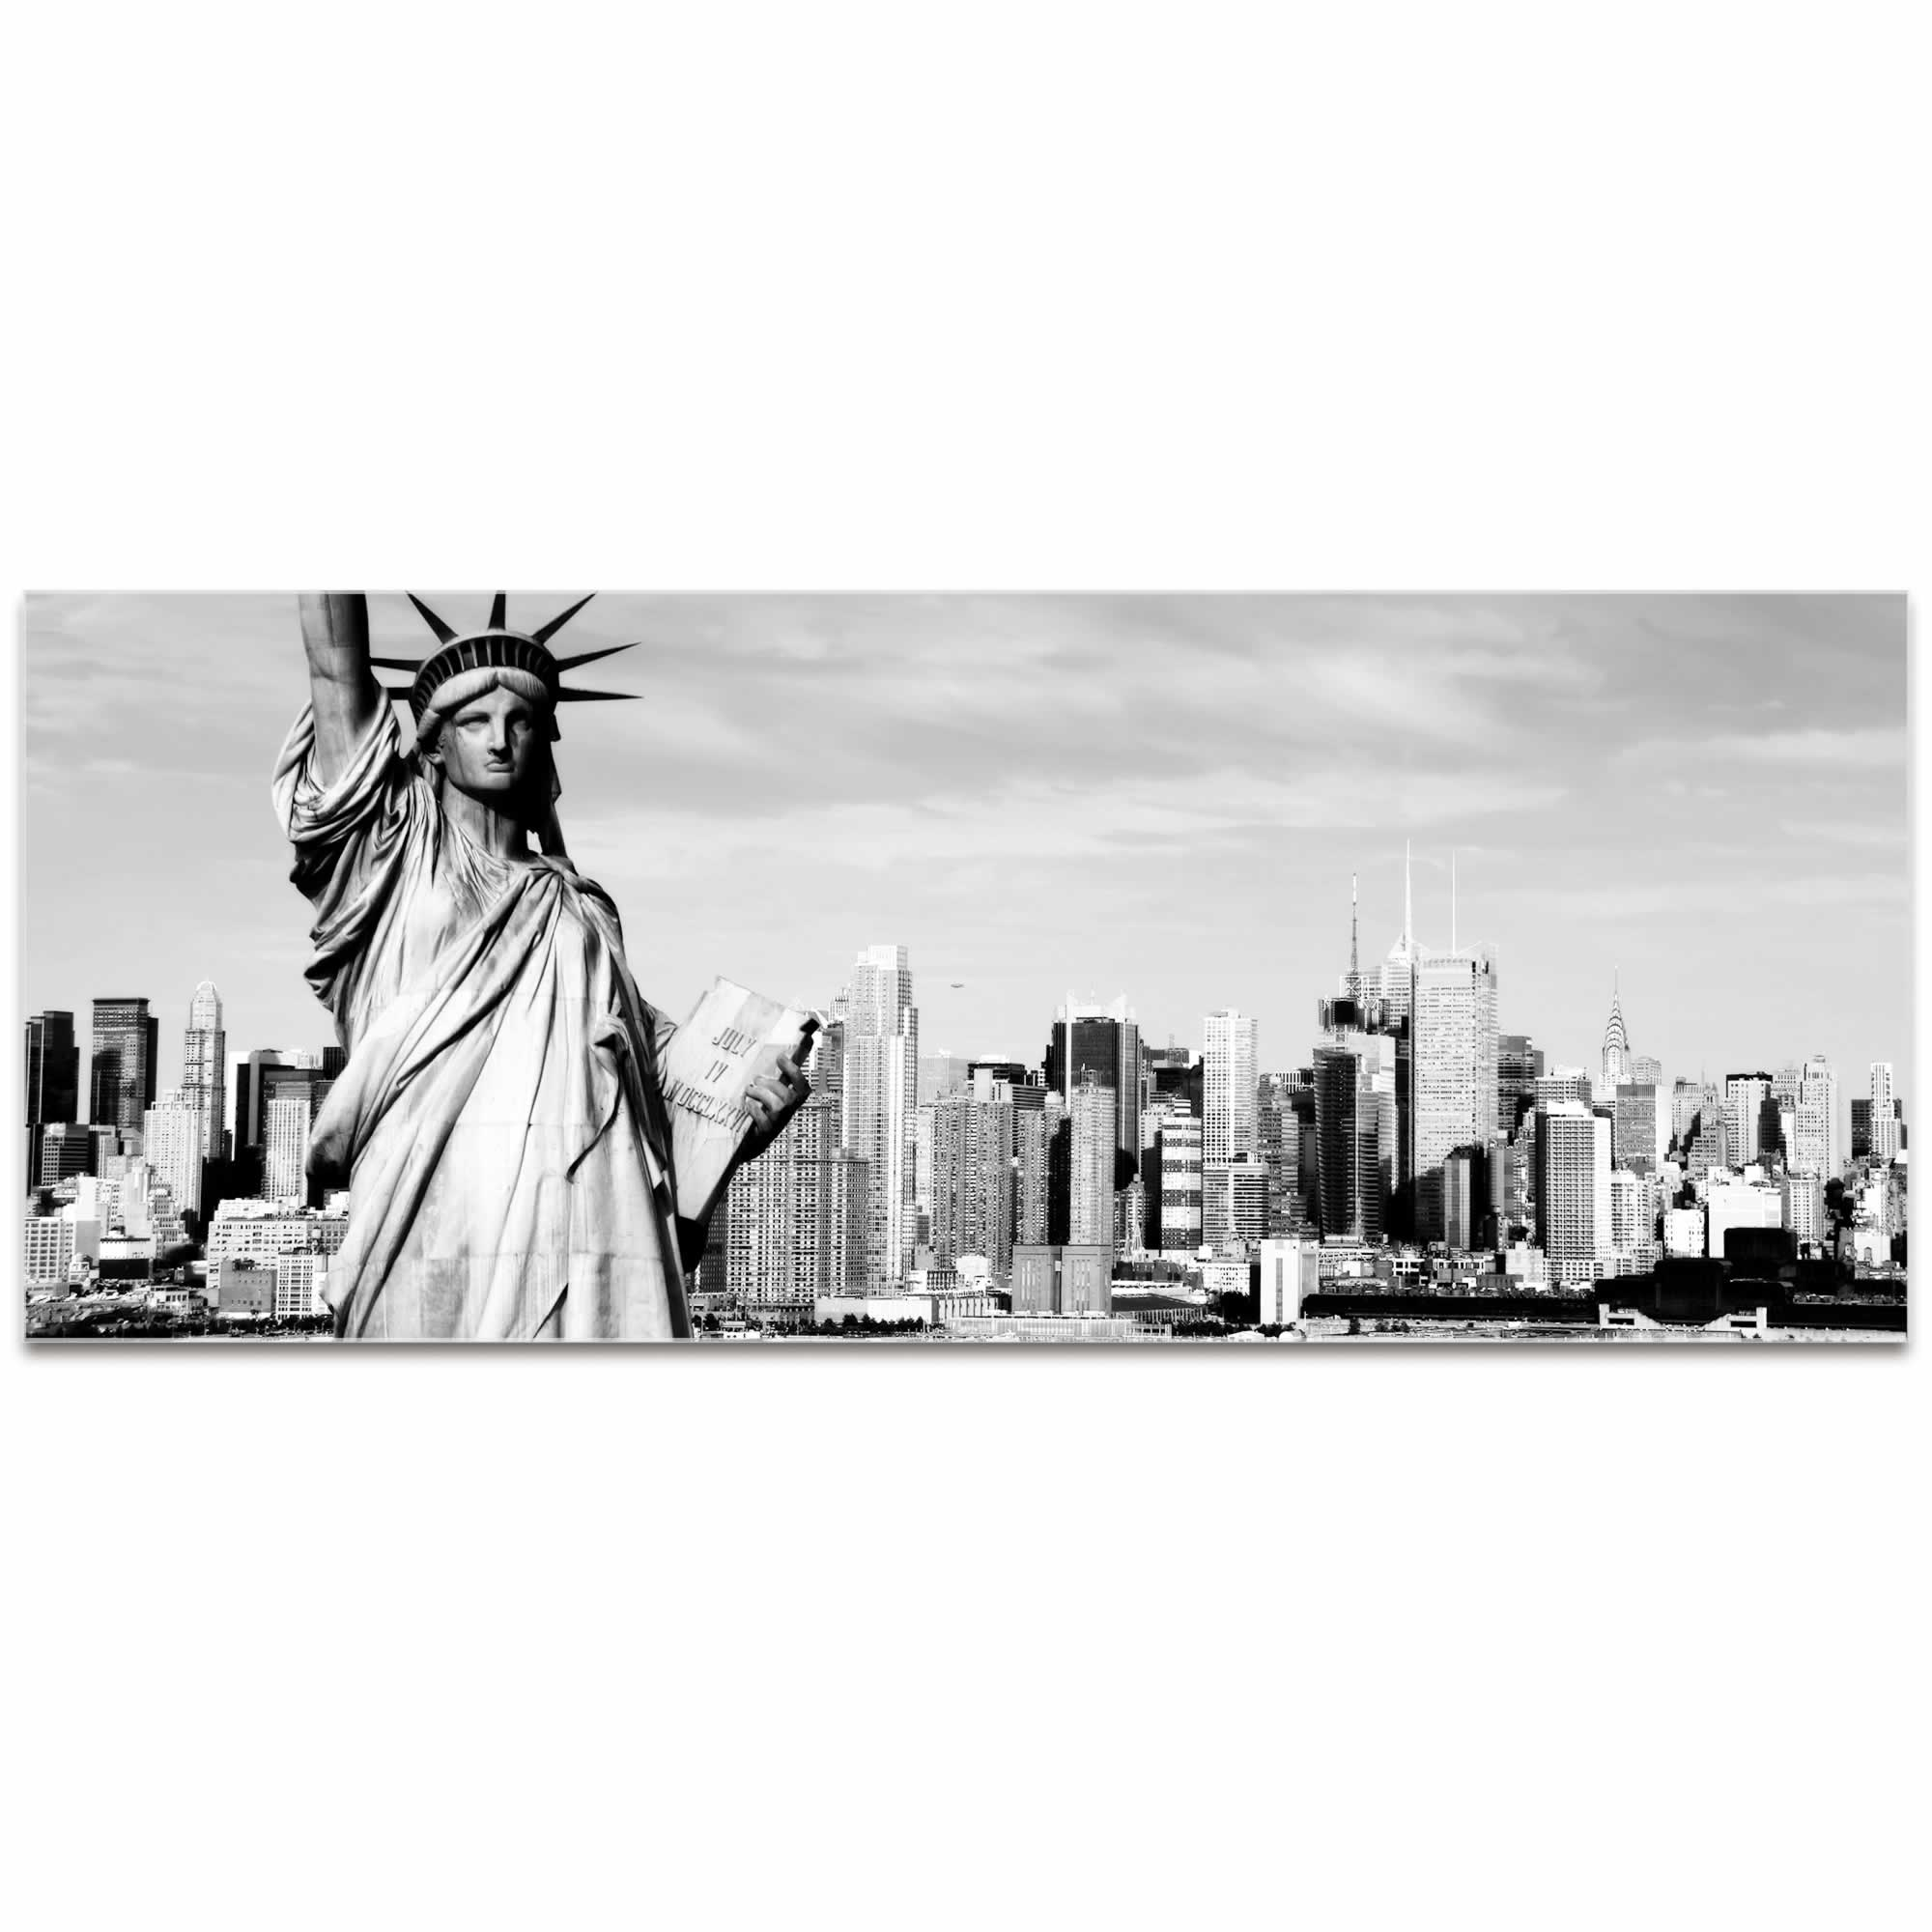 New York Black and White City Skyline - Urban Modern Art, Designer Home Decor, Cityscape Wall Artwork, Trendy Contemporary Art